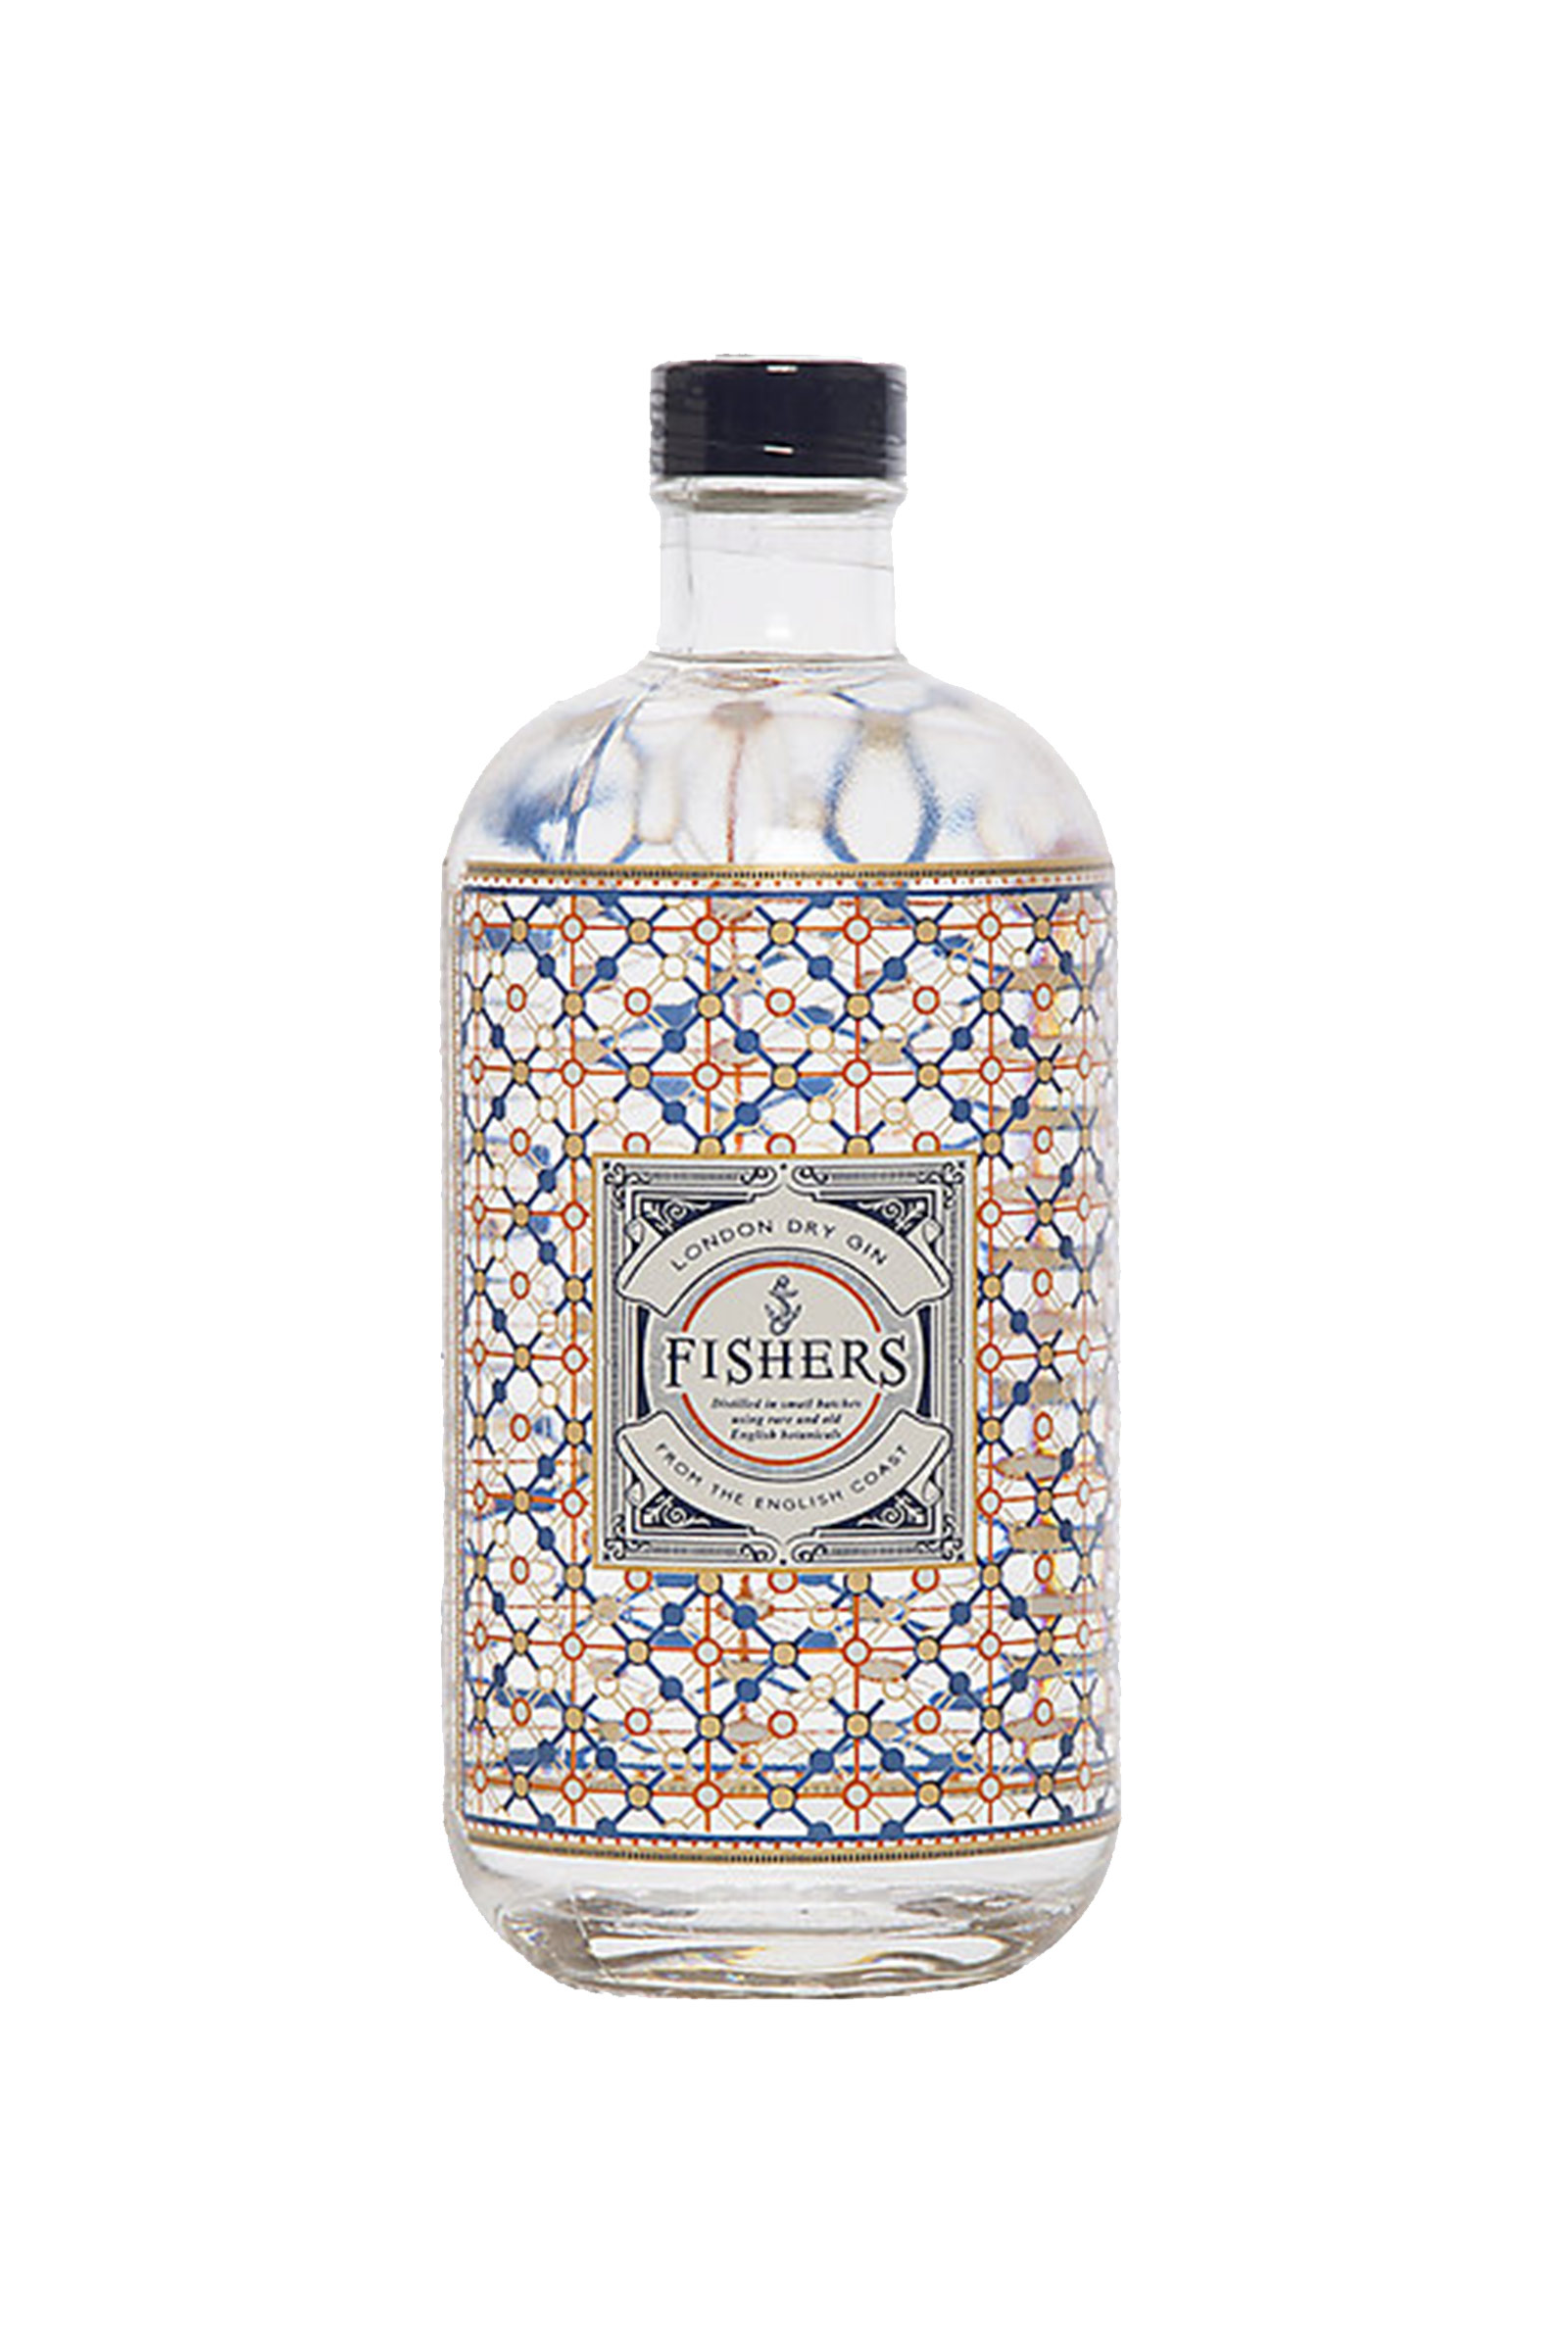 Click to Buy Fishers London Dry Gin